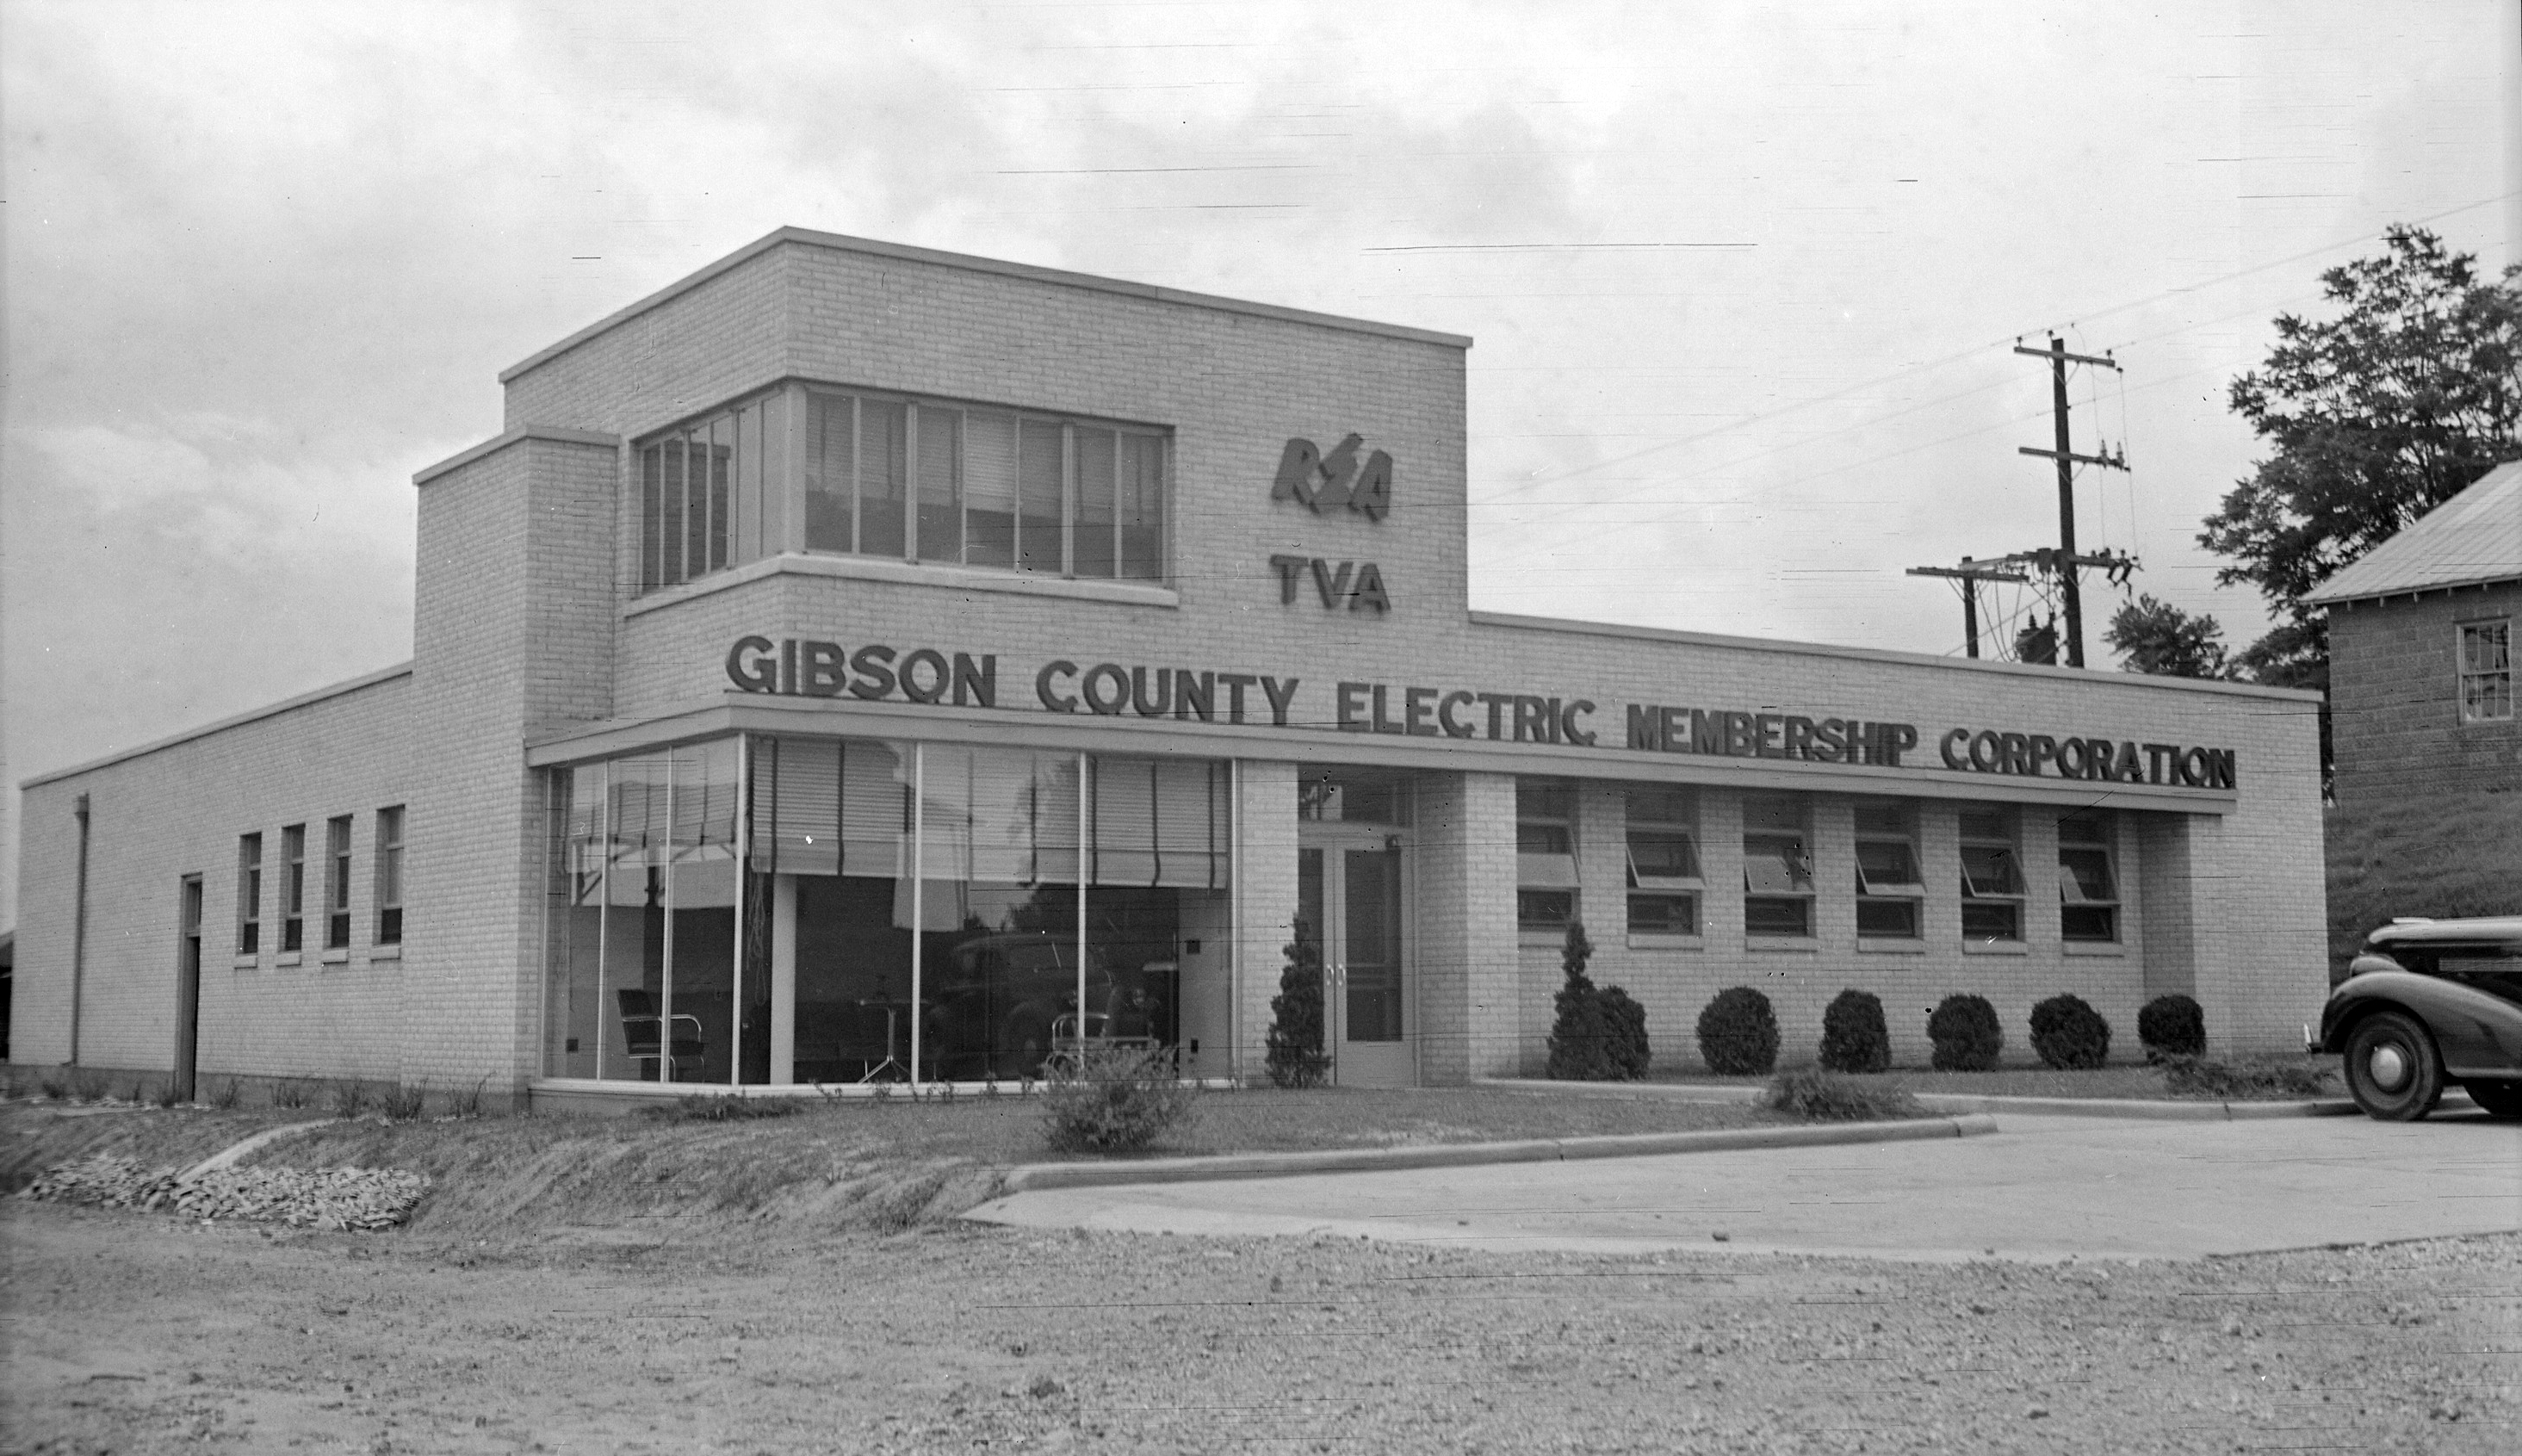 Tennessee gibson county idlewild - Tennessee Gibson County Idlewild 8